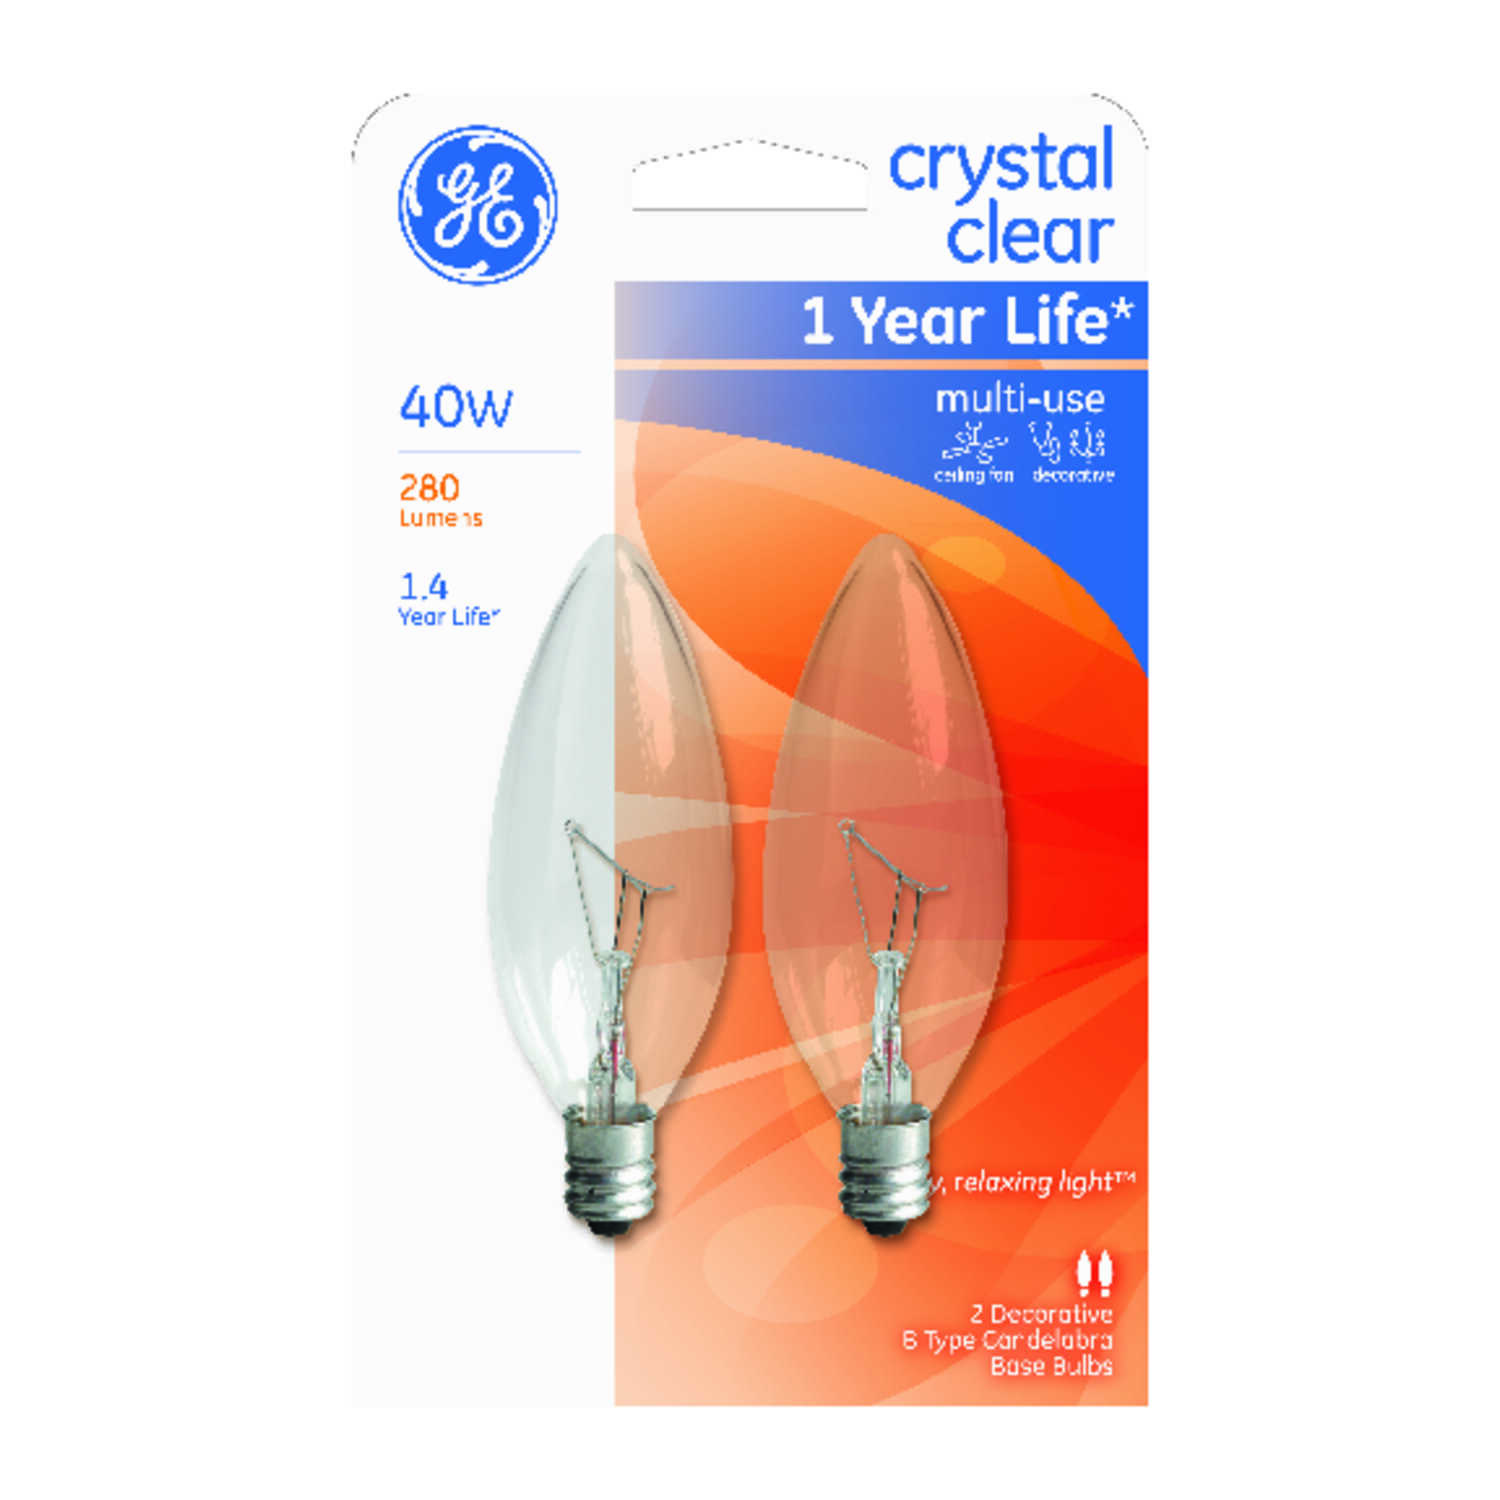 GE Lighting  40 watts B10  Incandescent Light Bulb  280 lumens White (Clear)  Blunt Tip  2 pk